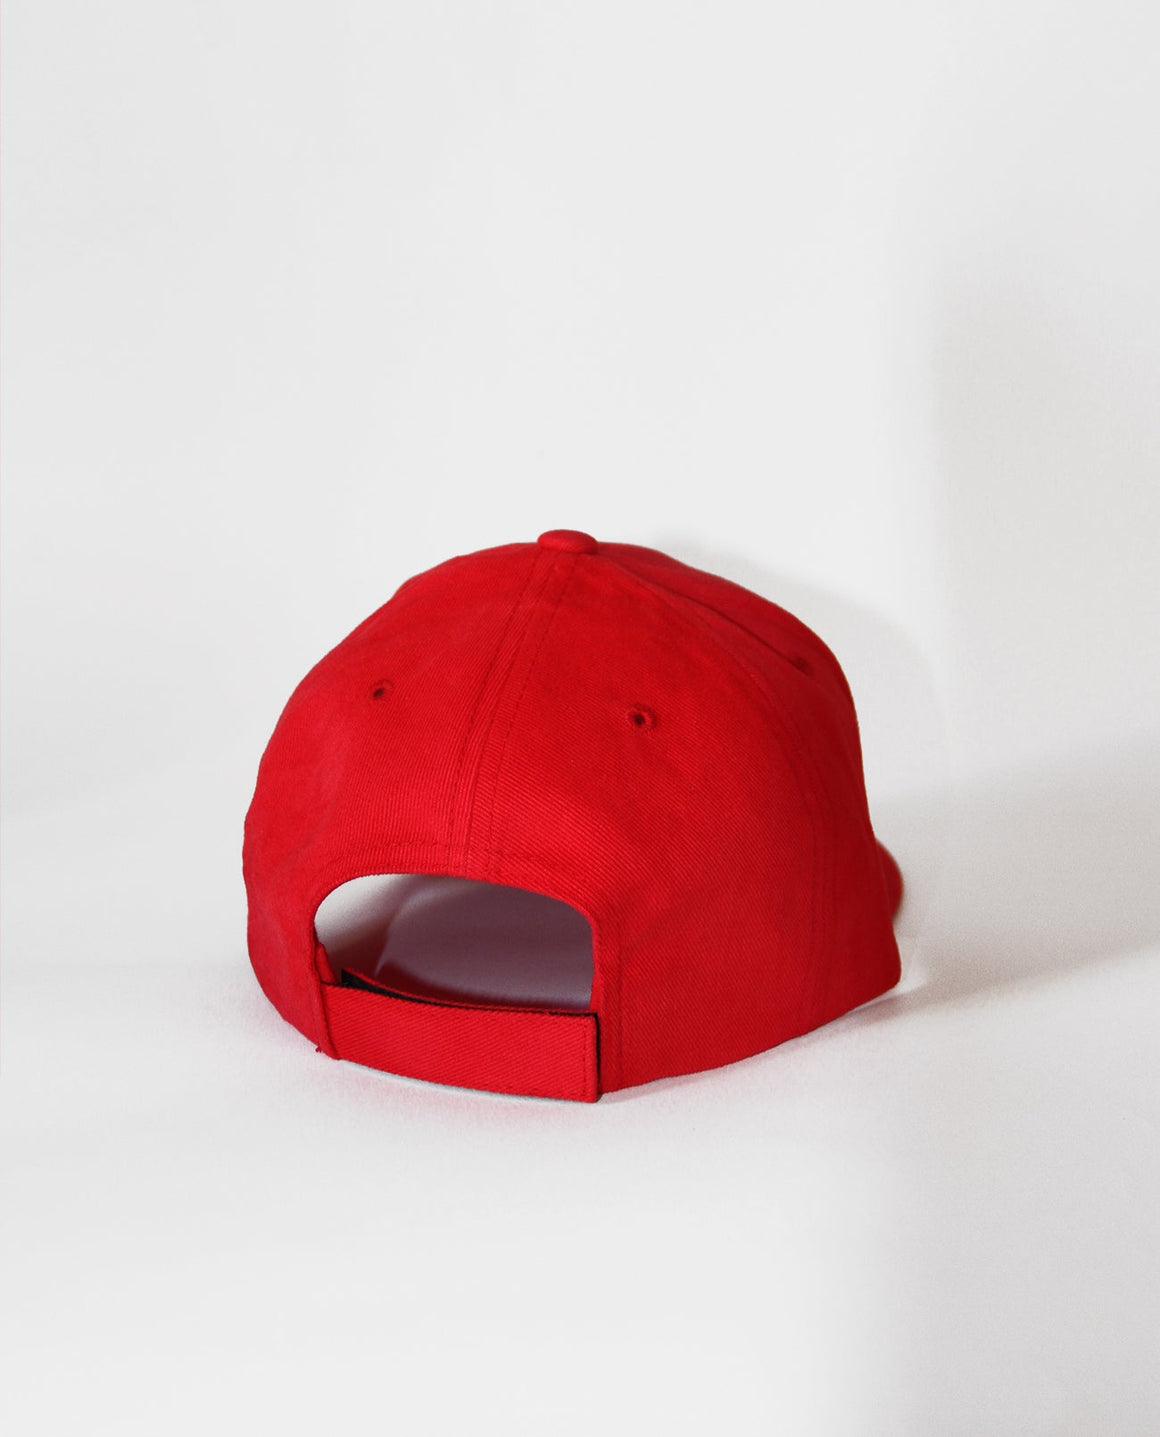 Logo Red Cap - Local Pattern